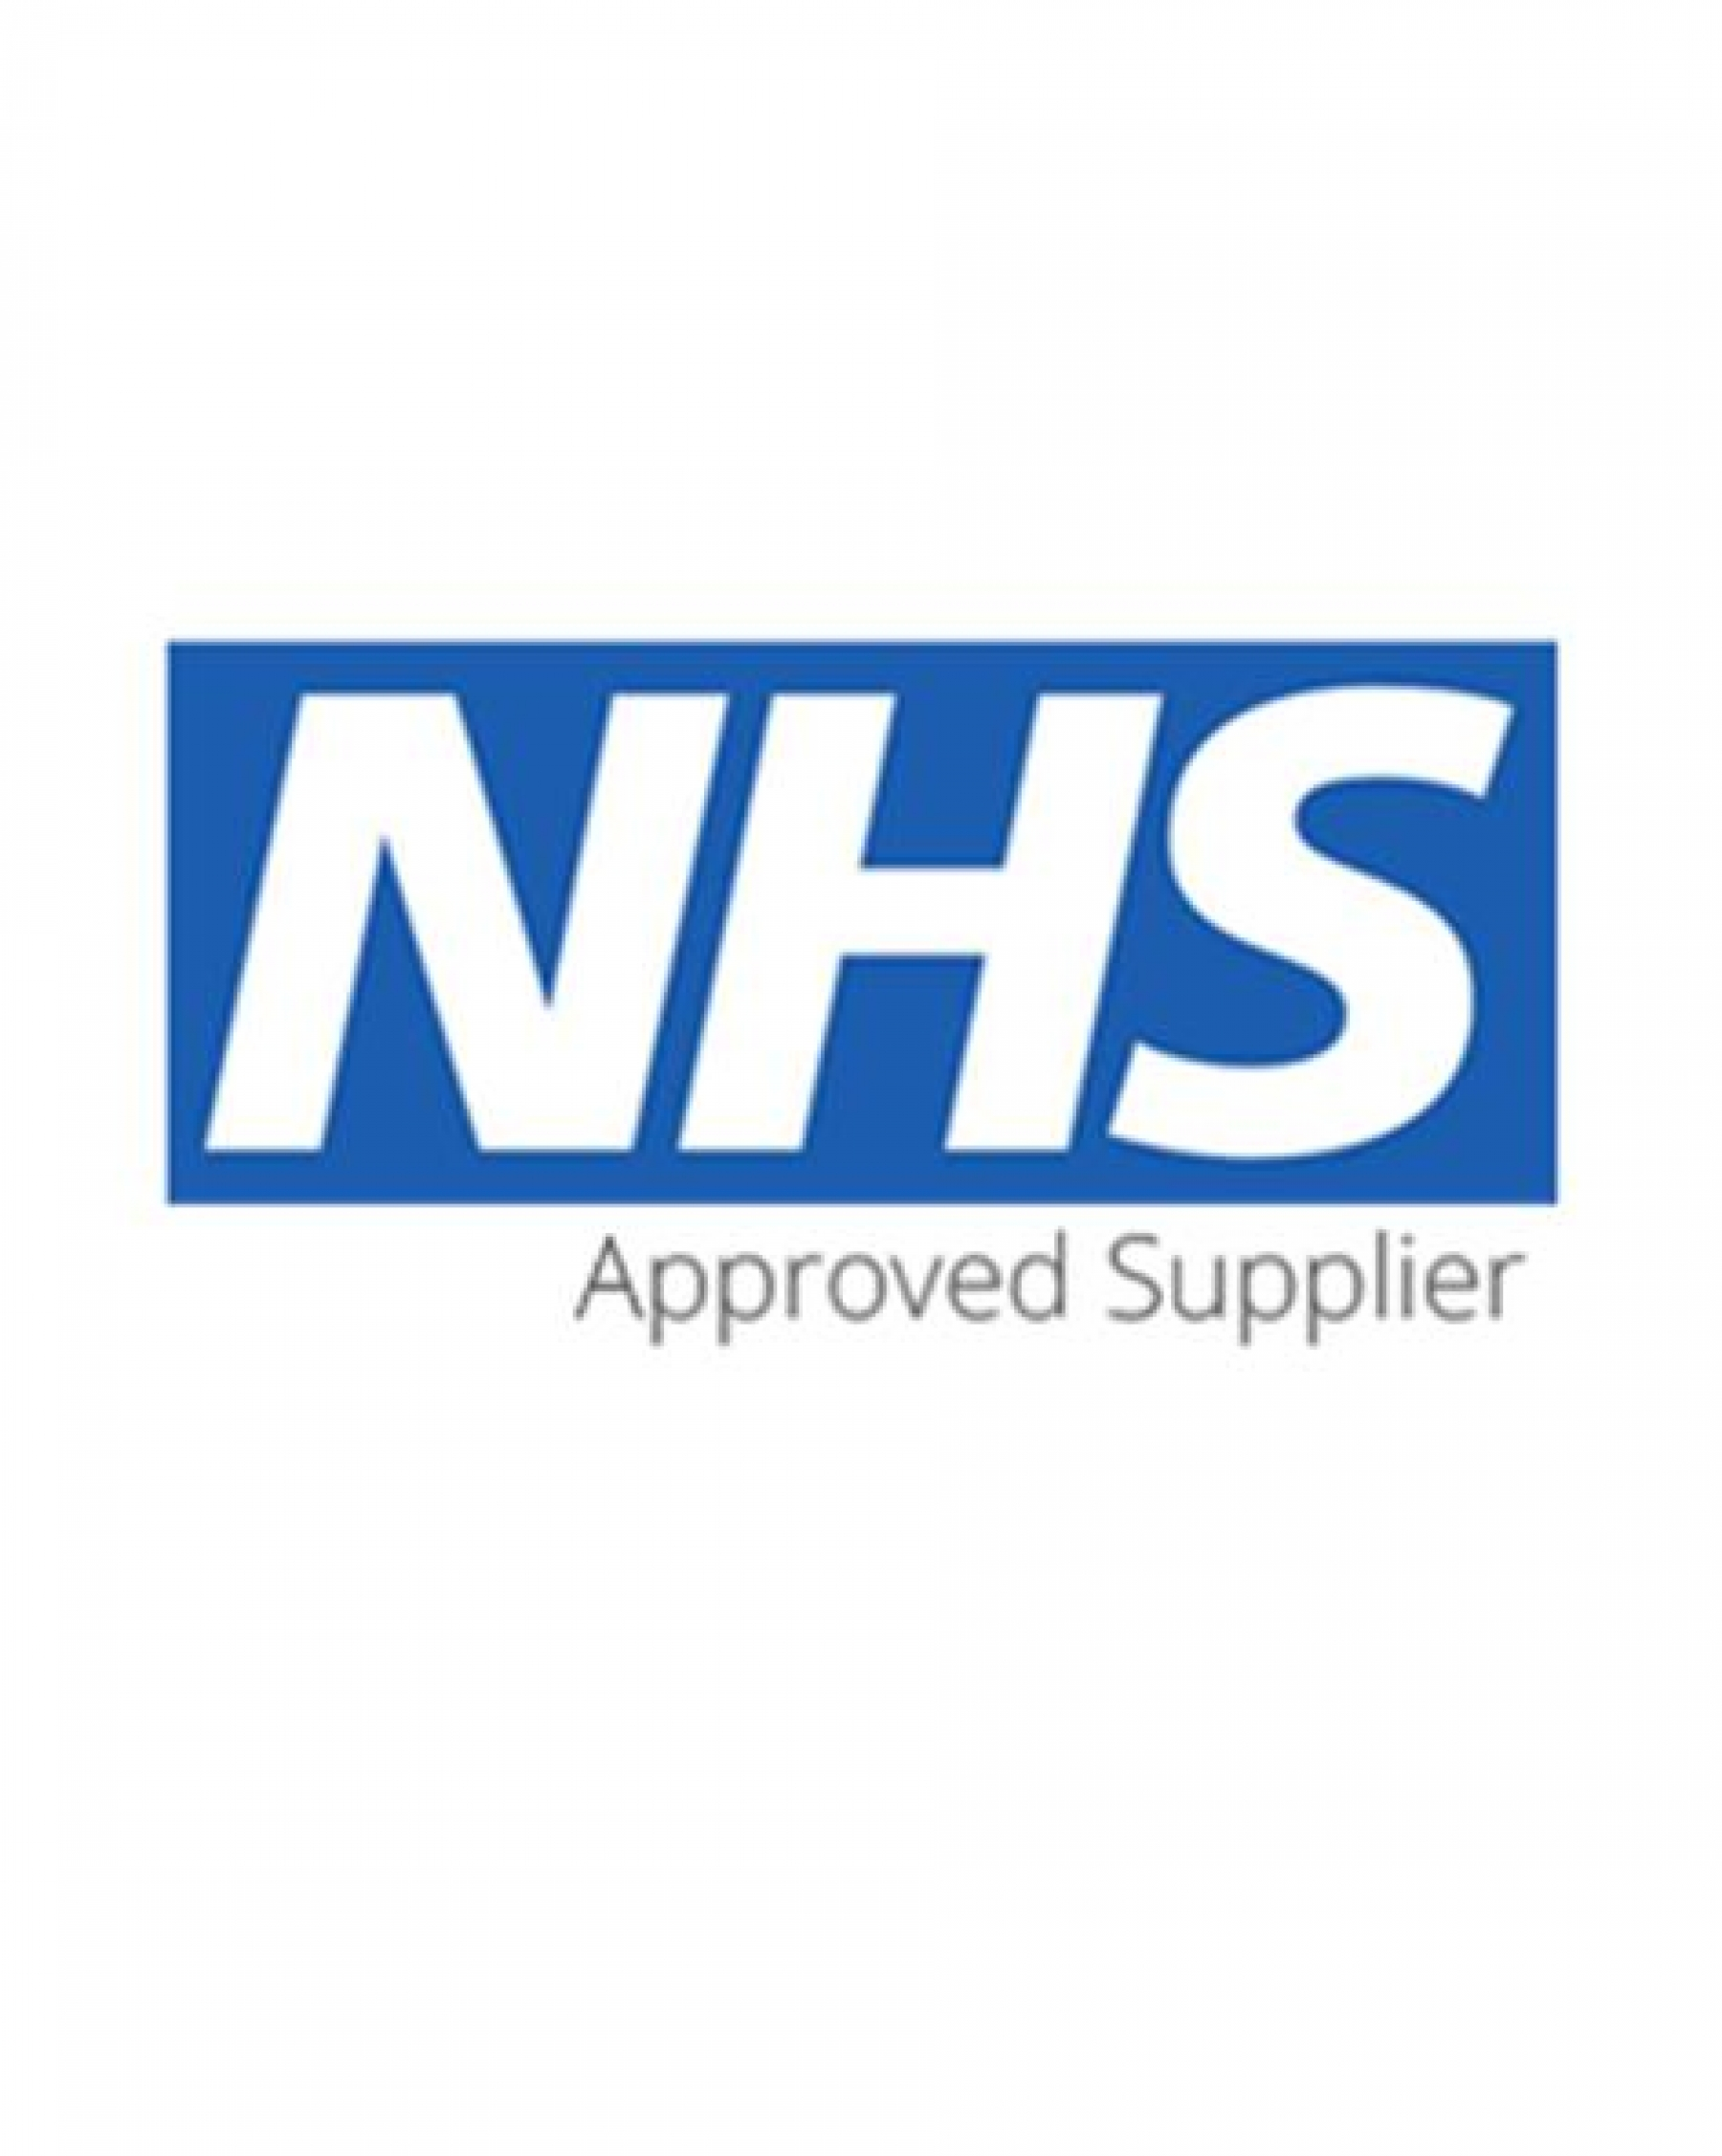 NHS Approved Supplier